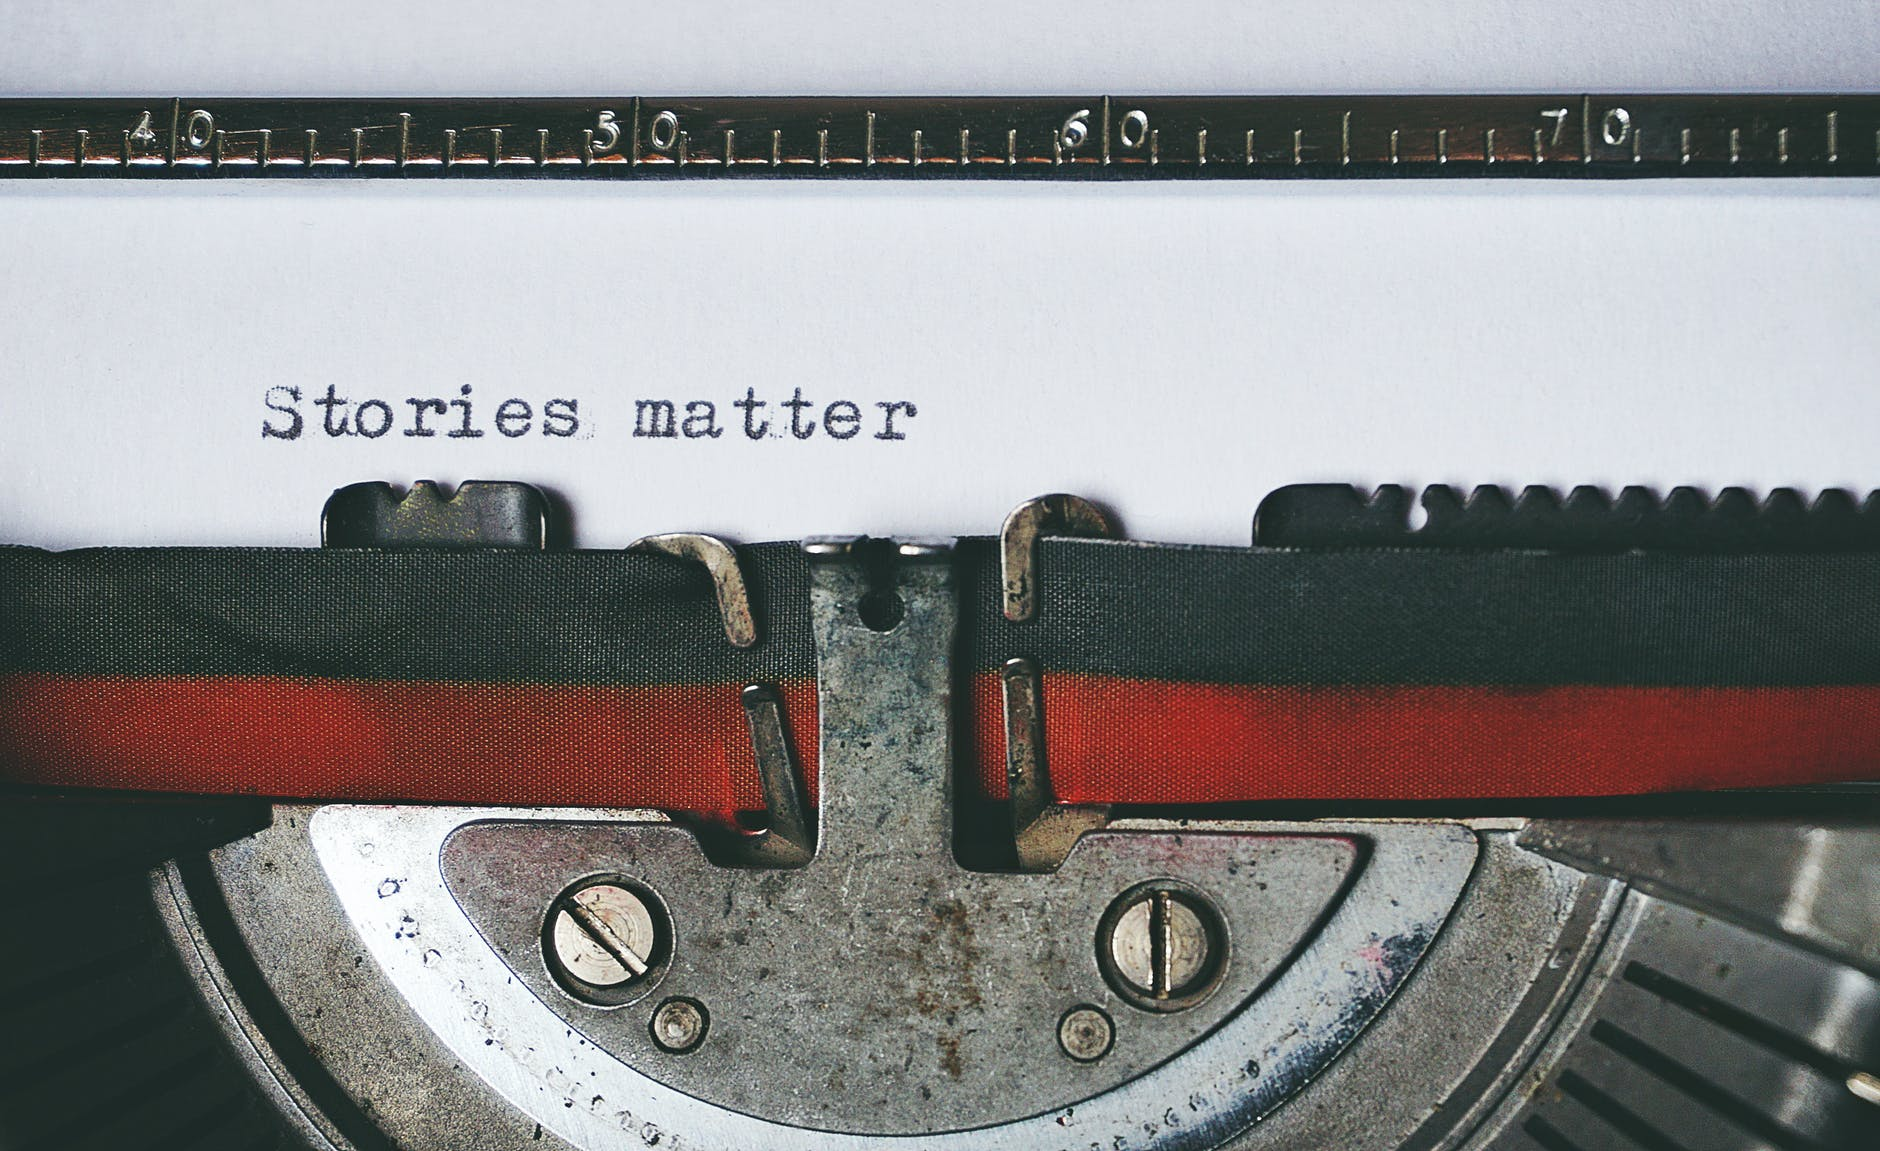 Photo by Suzy Hazelwood. A close-up of a typewriter. The ribbon sits below a line of text on a page. On the paper are the words Stories matter.